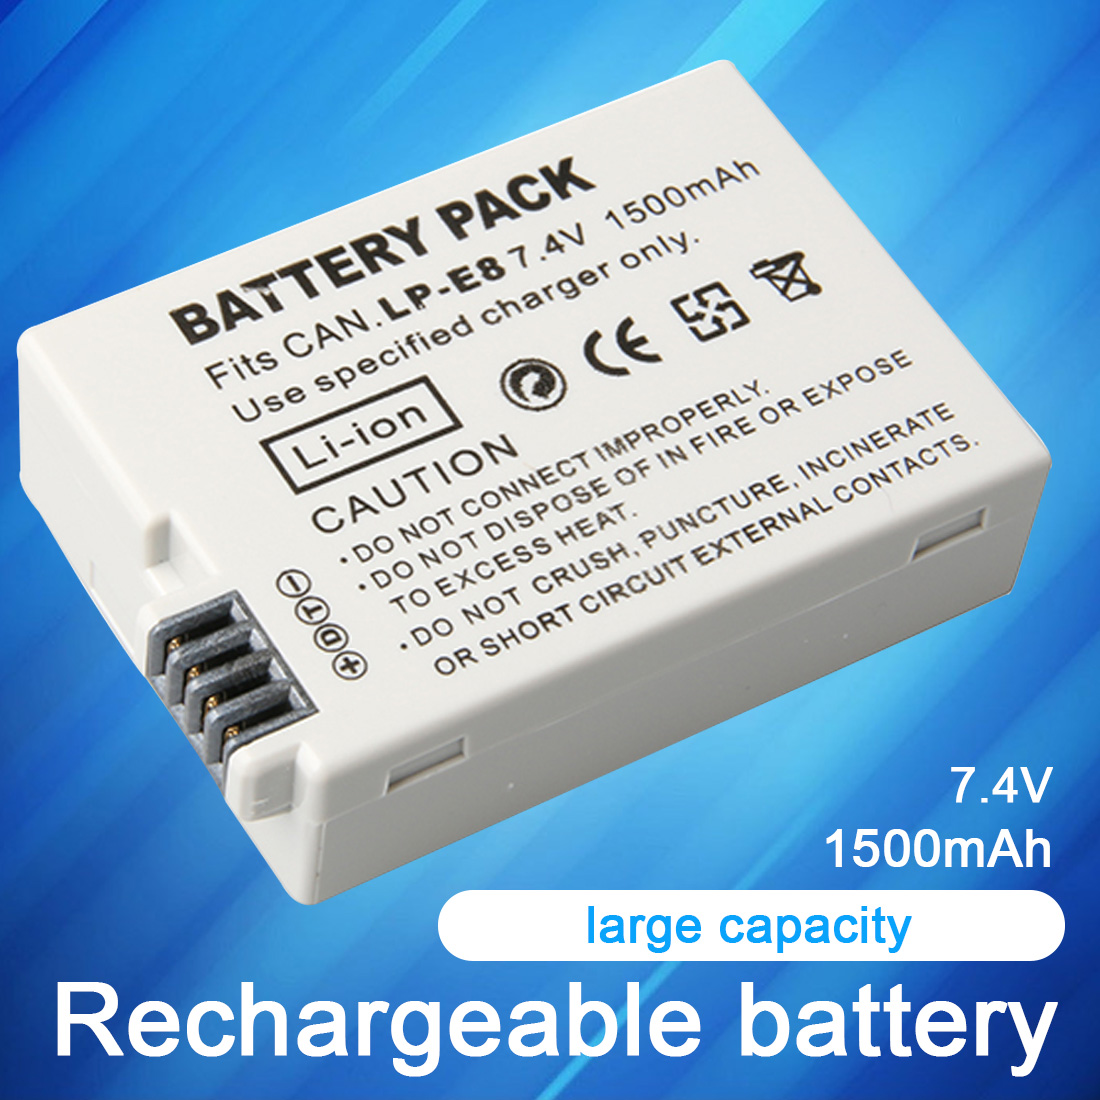 LP-E8 Lithium Polymer <font><b>Battery</b></font> 7.4V 1500mAh LP-E8 Li-ion <font><b>Battery</b></font> For <font><b>Canon</b></font> EOS <font><b>550D</b></font> 600D 650D 700D X4 X5 Li-Po <font><b>Battery</b></font> image